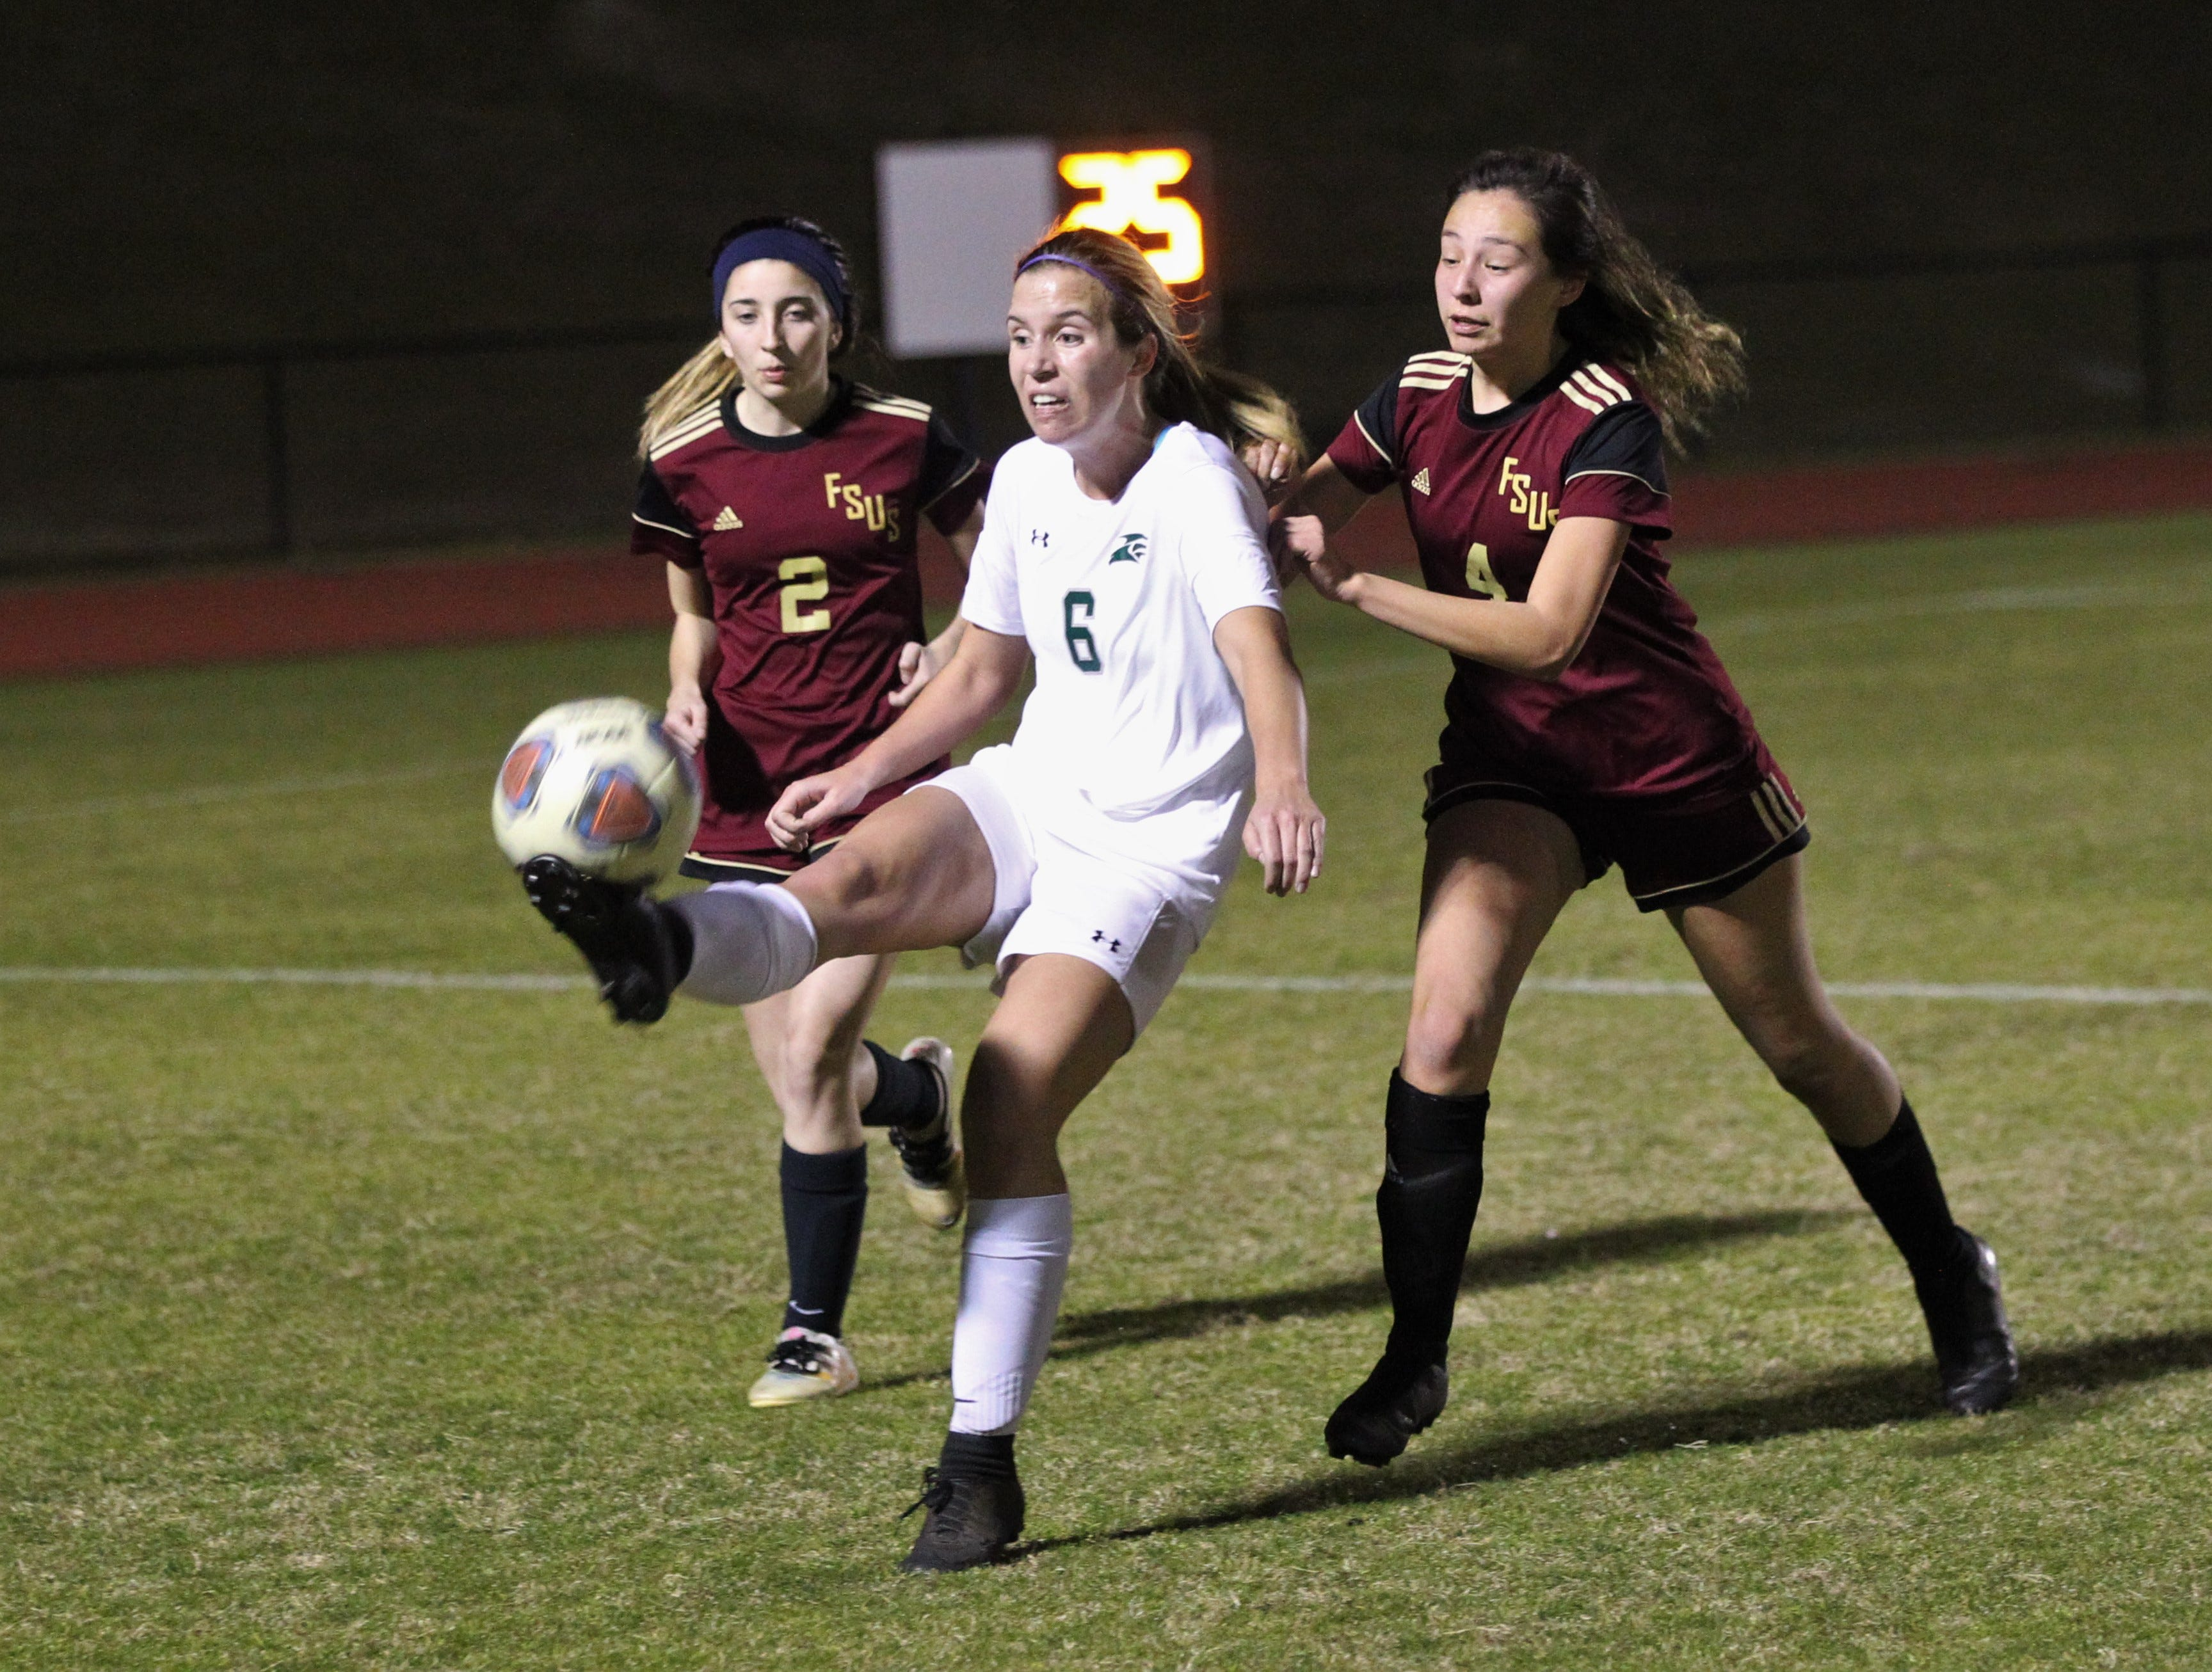 Florida High's Grace McDaniel and Daphne Cervantes defend as South Walton's girls soccer team edged the Seminoles 5-4 in a penalty-kick shootout during a Region 1-2A semifinal on Feb. 8, 2019.